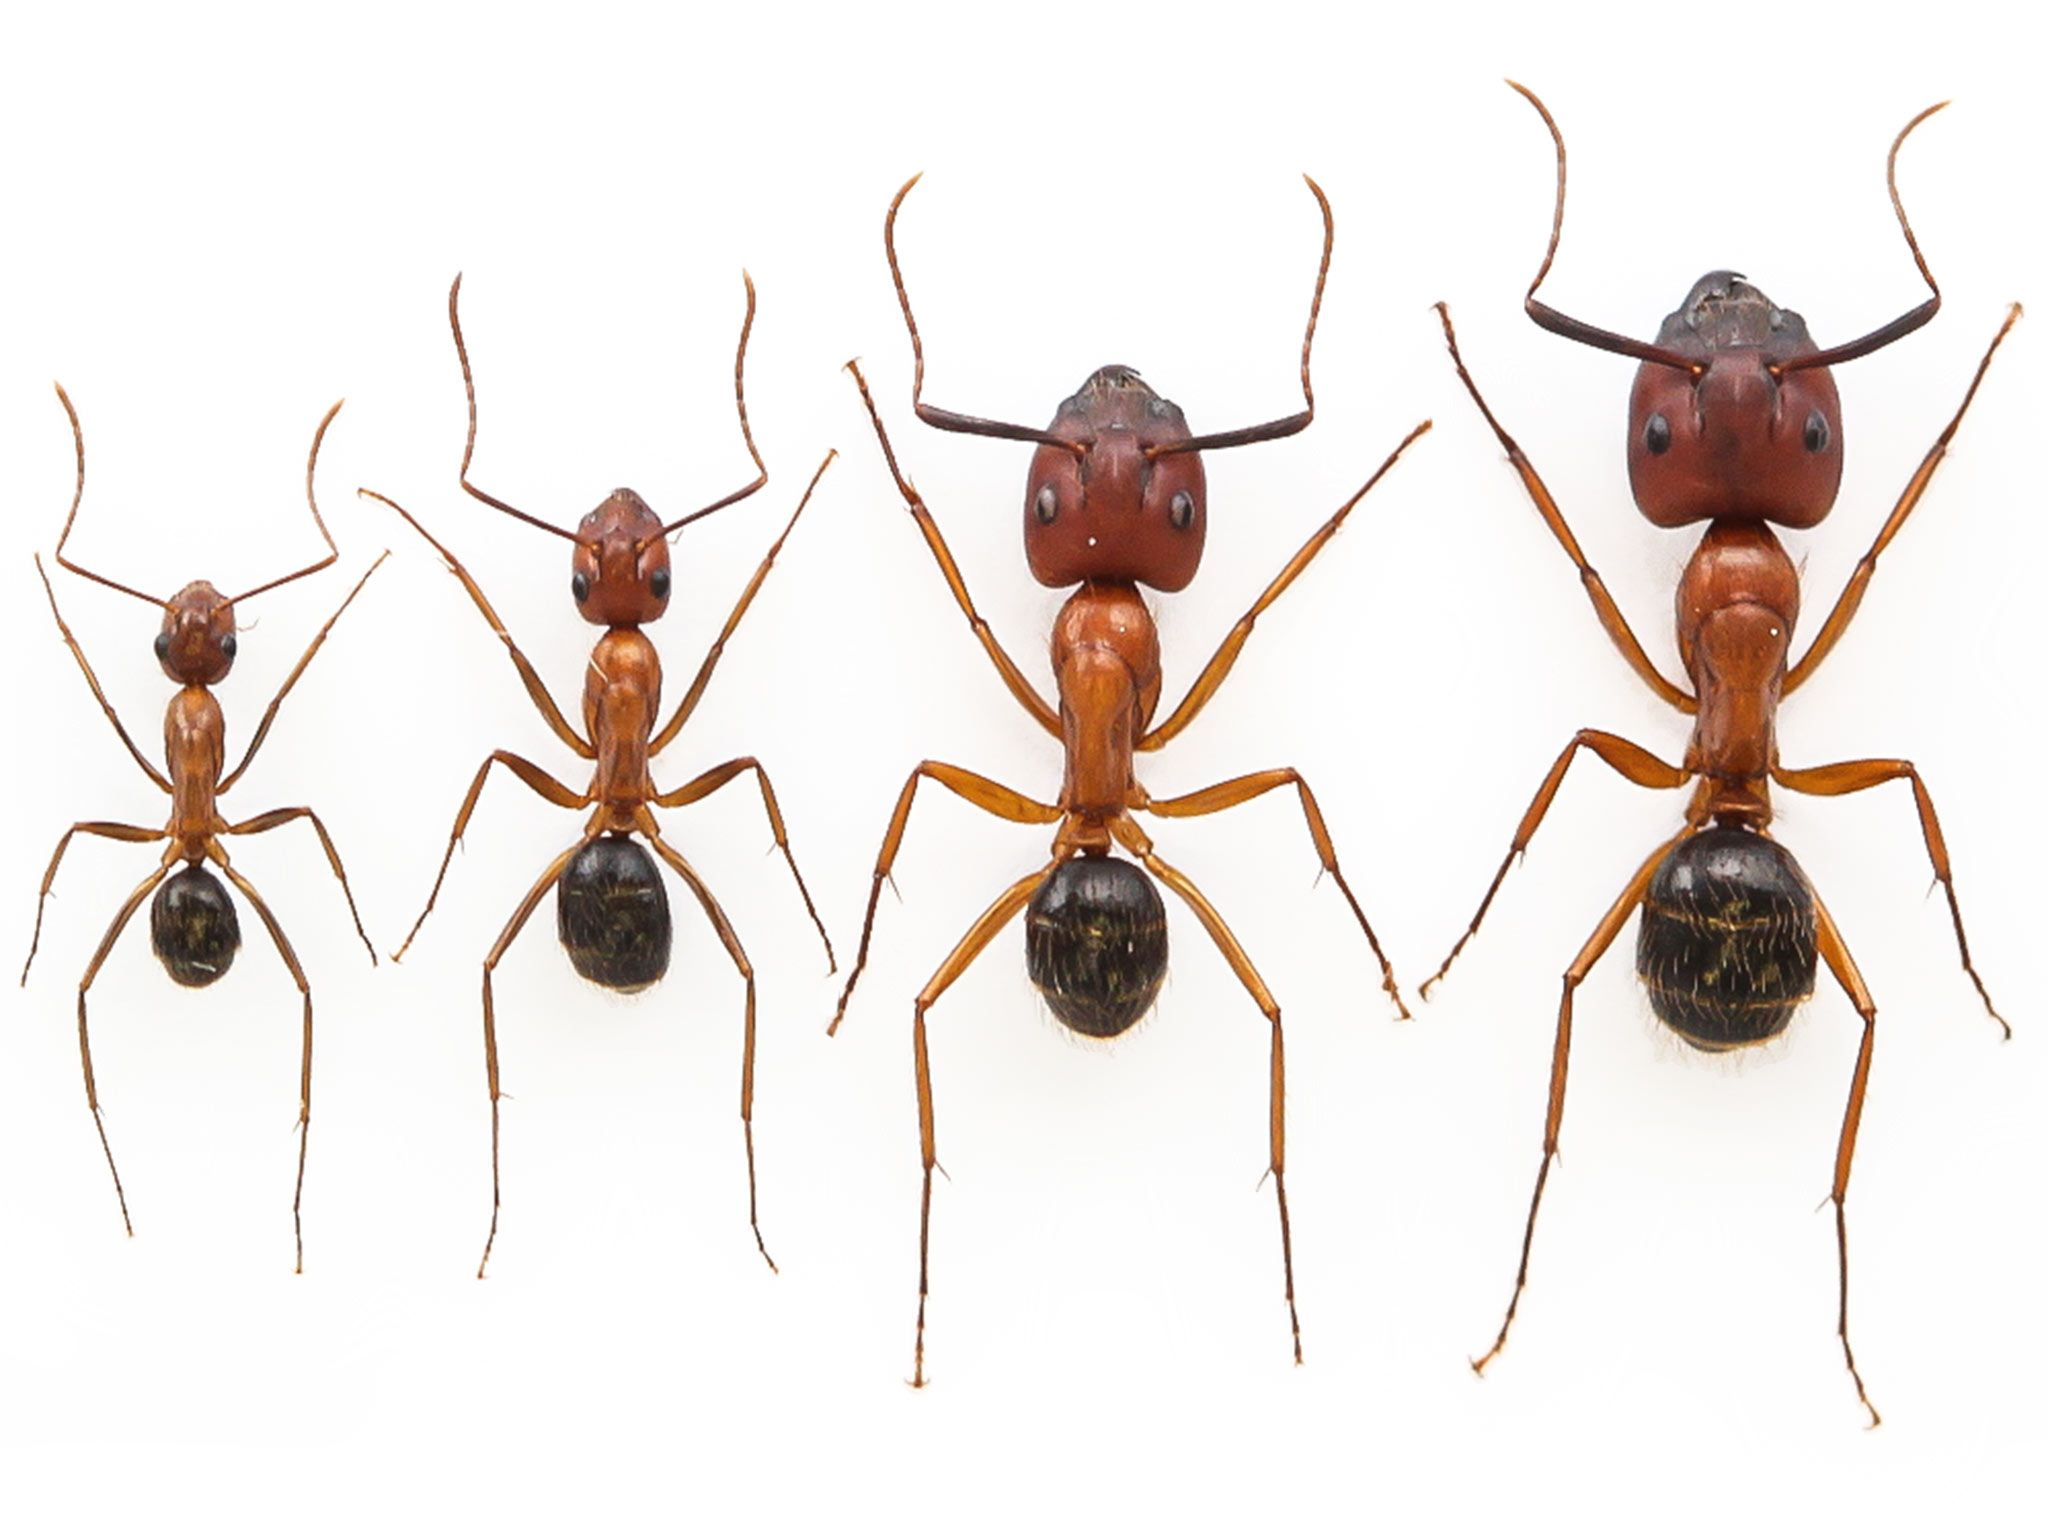 Researchers nearly double the size of worker ants   Researchers have ...